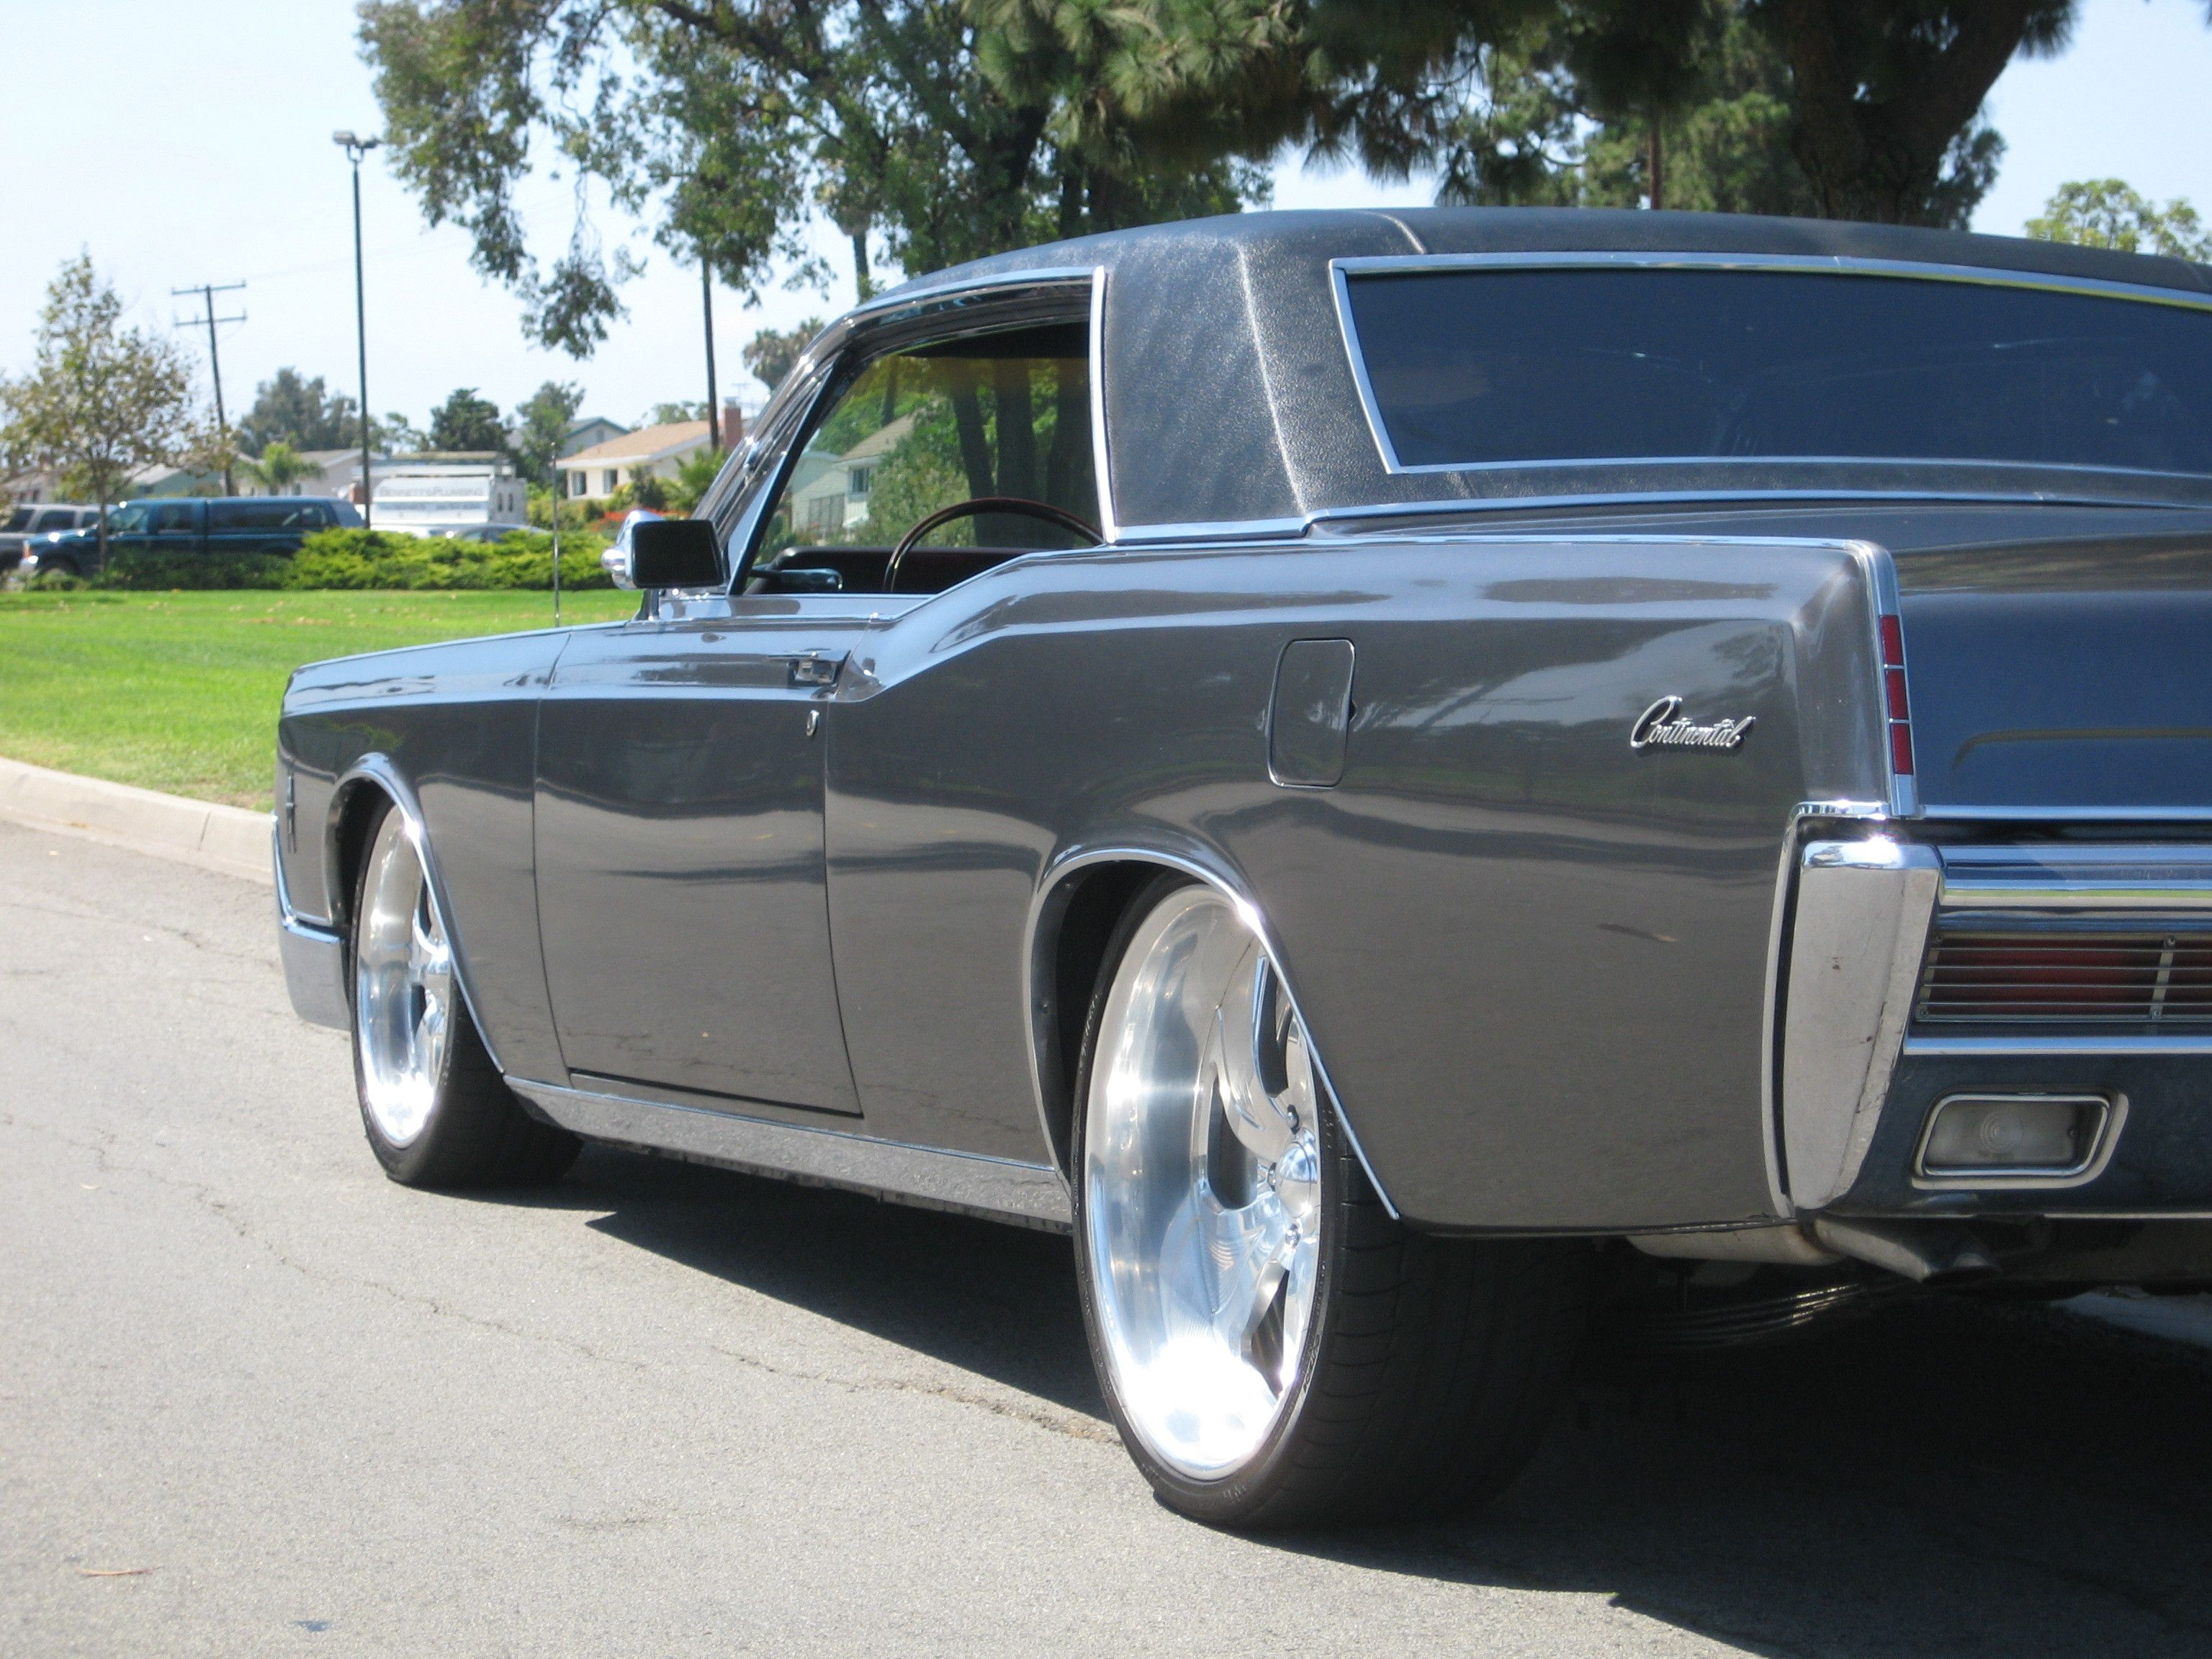 check out customized gregory31 39 s 1966 lincoln continental photos parts specs modification. Black Bedroom Furniture Sets. Home Design Ideas